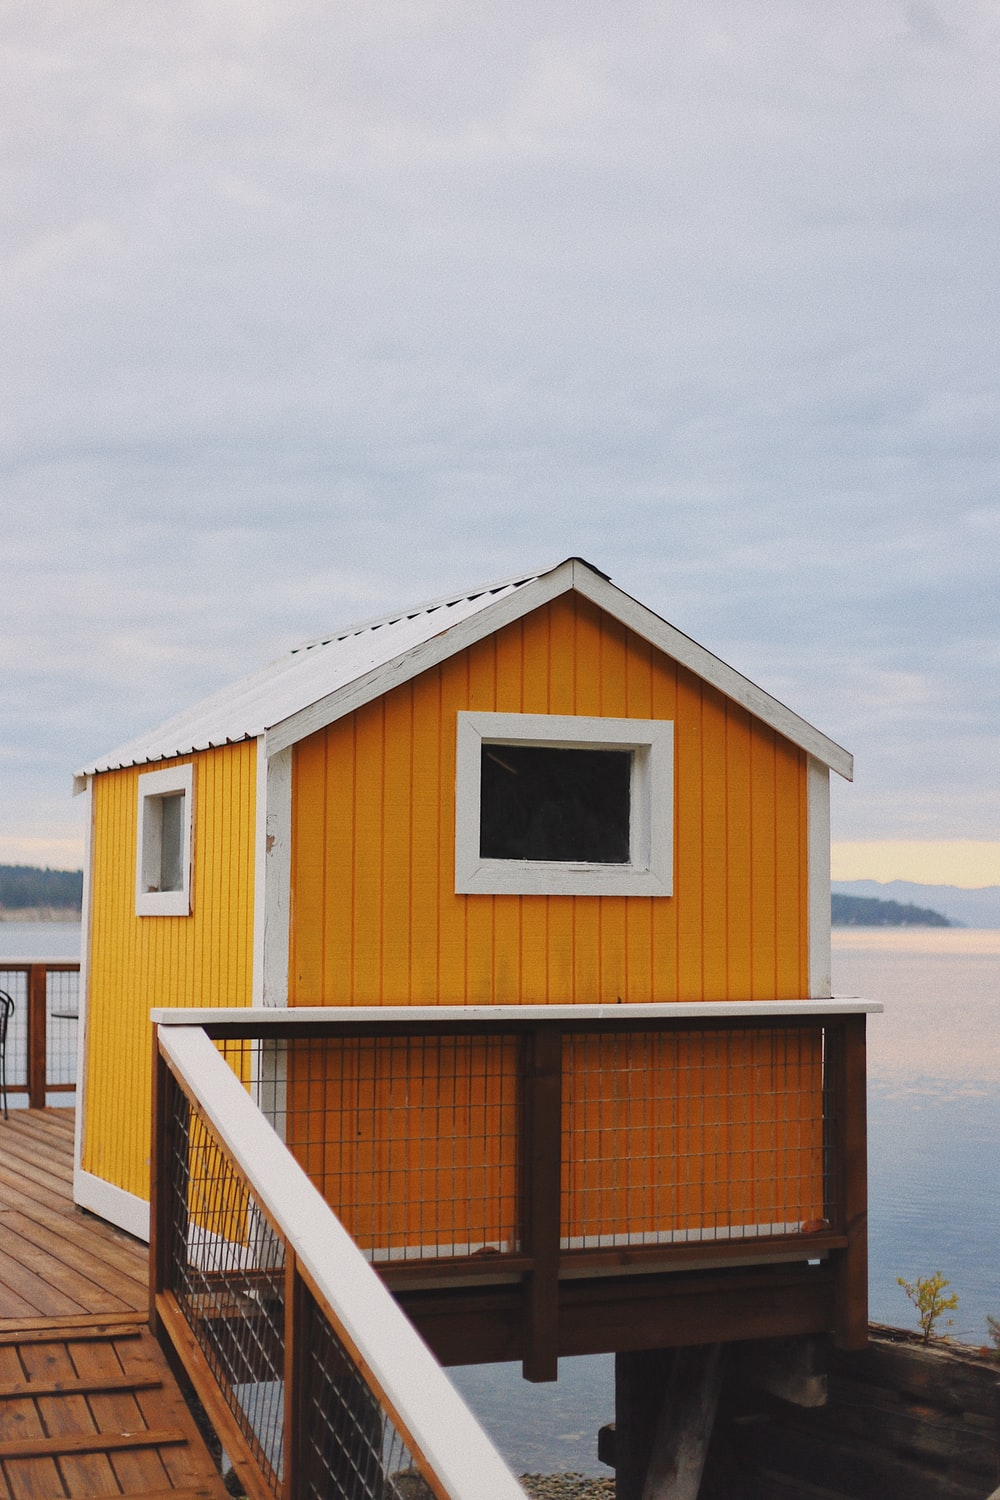 orange and white shed in dock